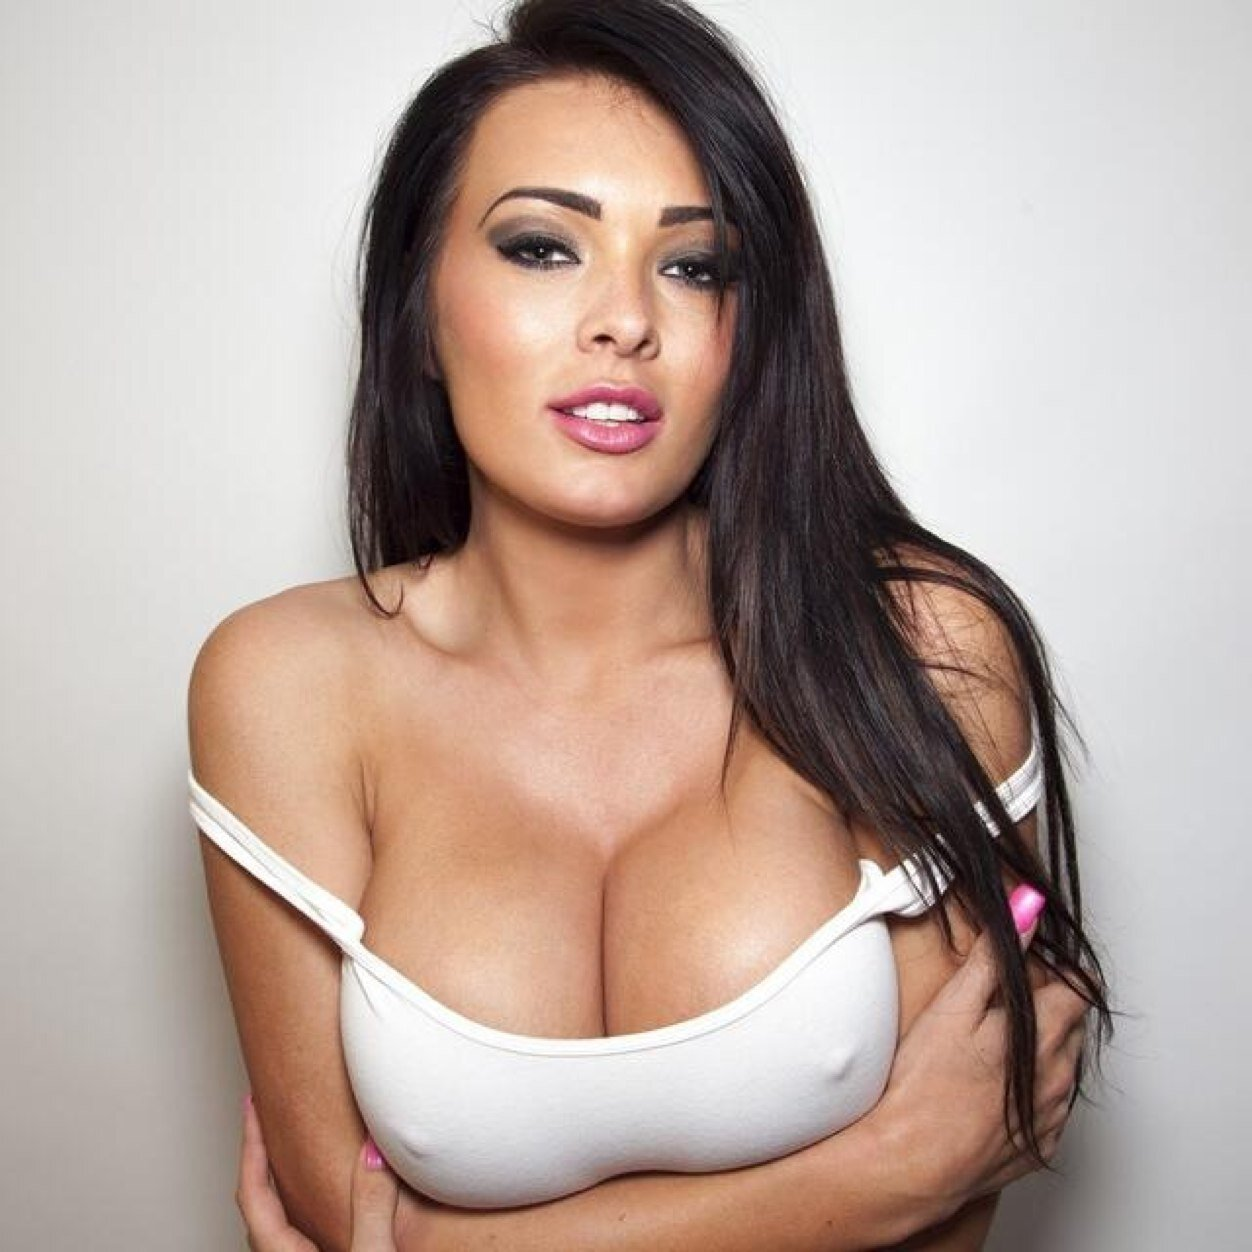 Women Looking Men For Get Laid